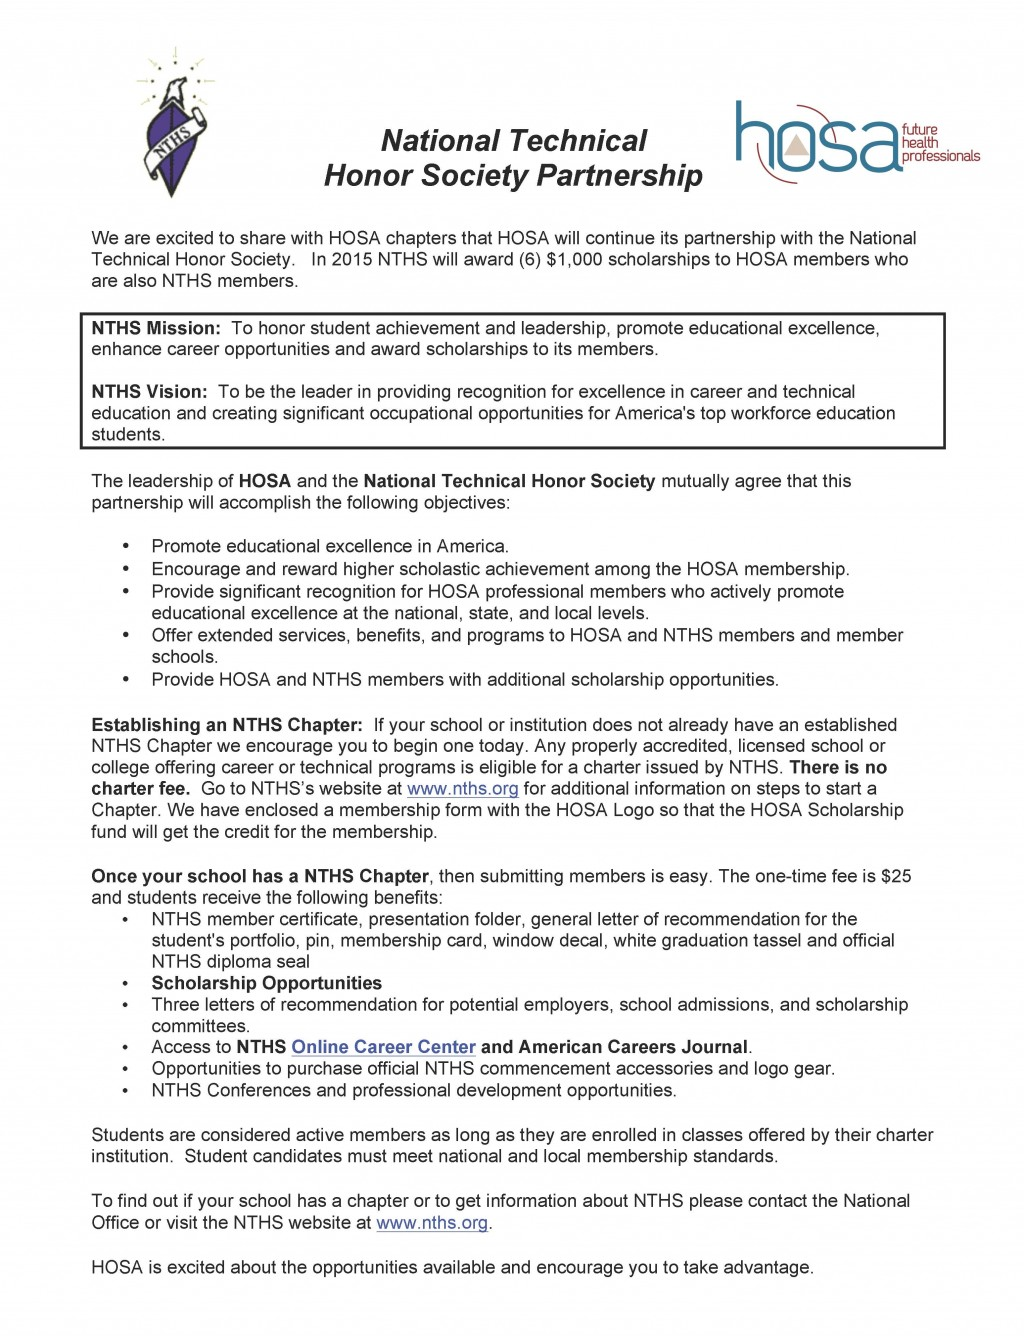 005 Nhs Essay Prompt Archives Madhurbatter Writings For 4th Grade National Honor Society H College Middle School Uc High 5th Gre 3rd Stupendous Tips Requirements Large